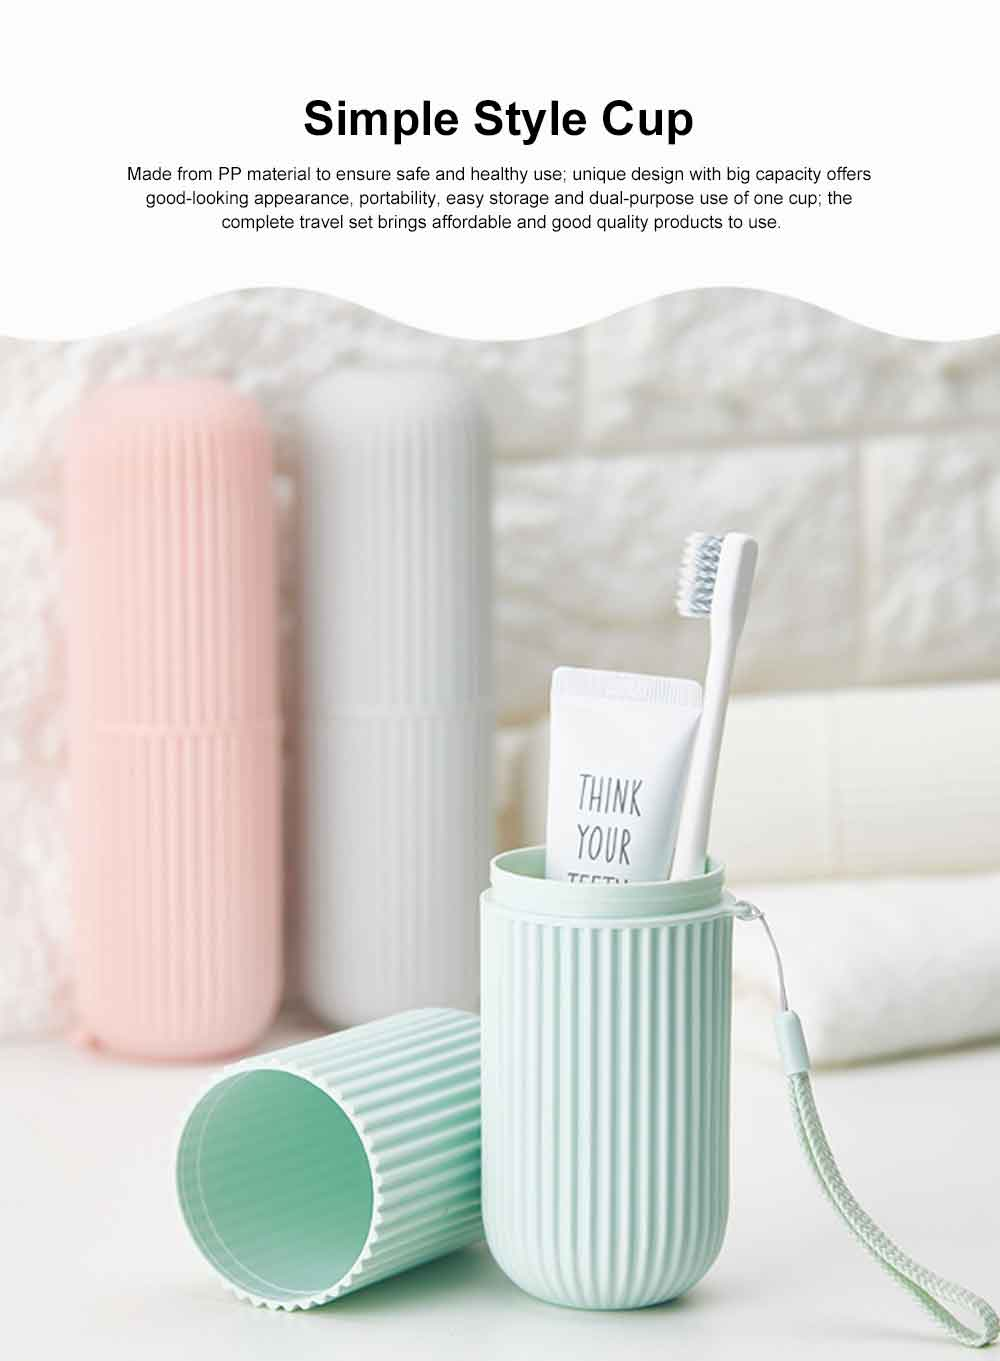 Portable Toothbrush Box Set Made from Wheat Straw for Travel Purpose Resining Cups Teeth Brush Mug Set Couple Cups Simple Style Teeth Tools Storage Box 0